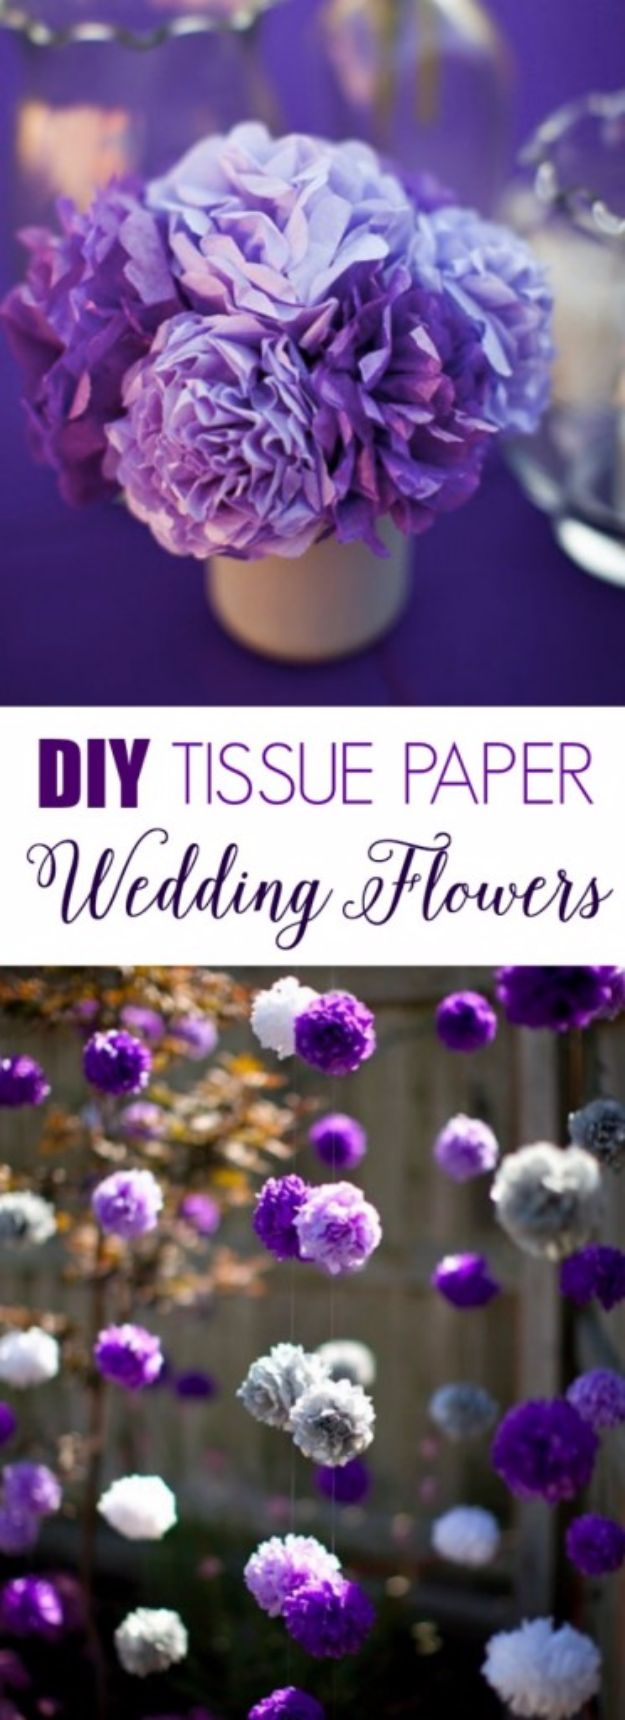 DIY Wedding Decor - DIY Tissue Paper Flowers - Easy and Cheap Project Ideas with Things Found in Dollar Stores - Simple and Creative Backdrops for Receptions On A Budget - Rustic, Elegant, and Vintage Paper Ideas for Centerpieces, and Vases